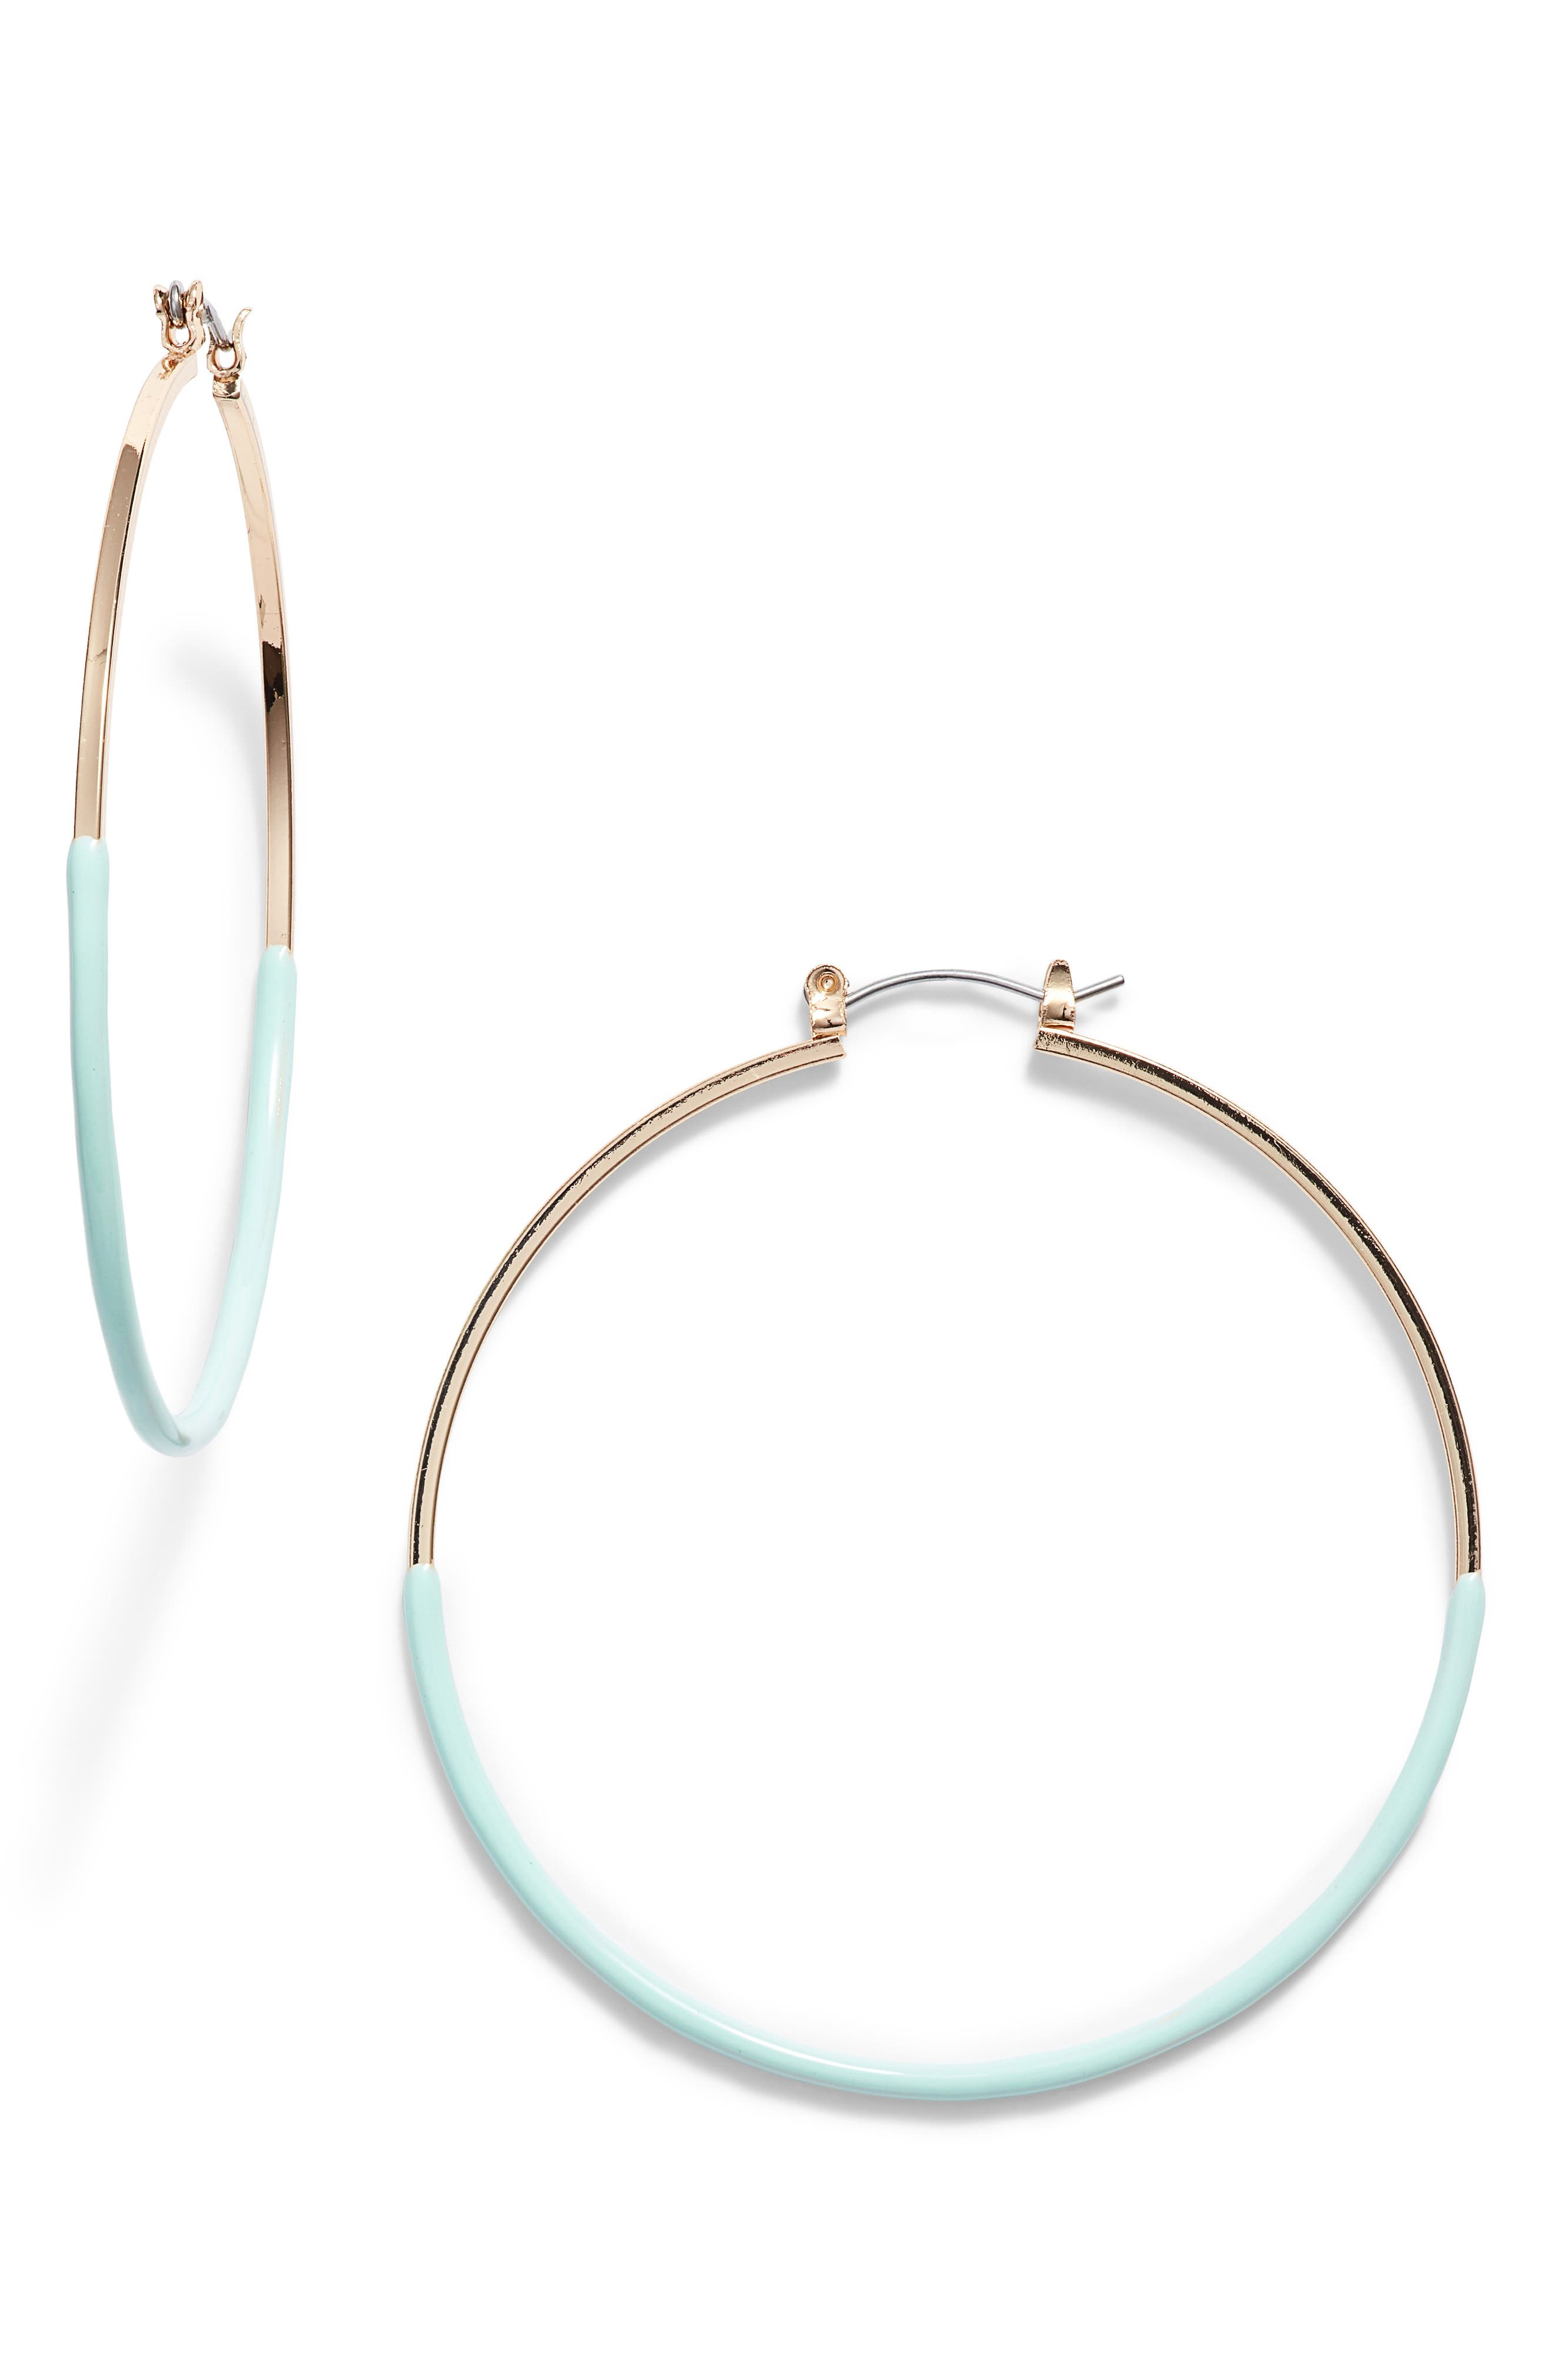 Ariana Hoop Earrings,                             Main thumbnail 1, color,                             GOLD/ TURQUOISE